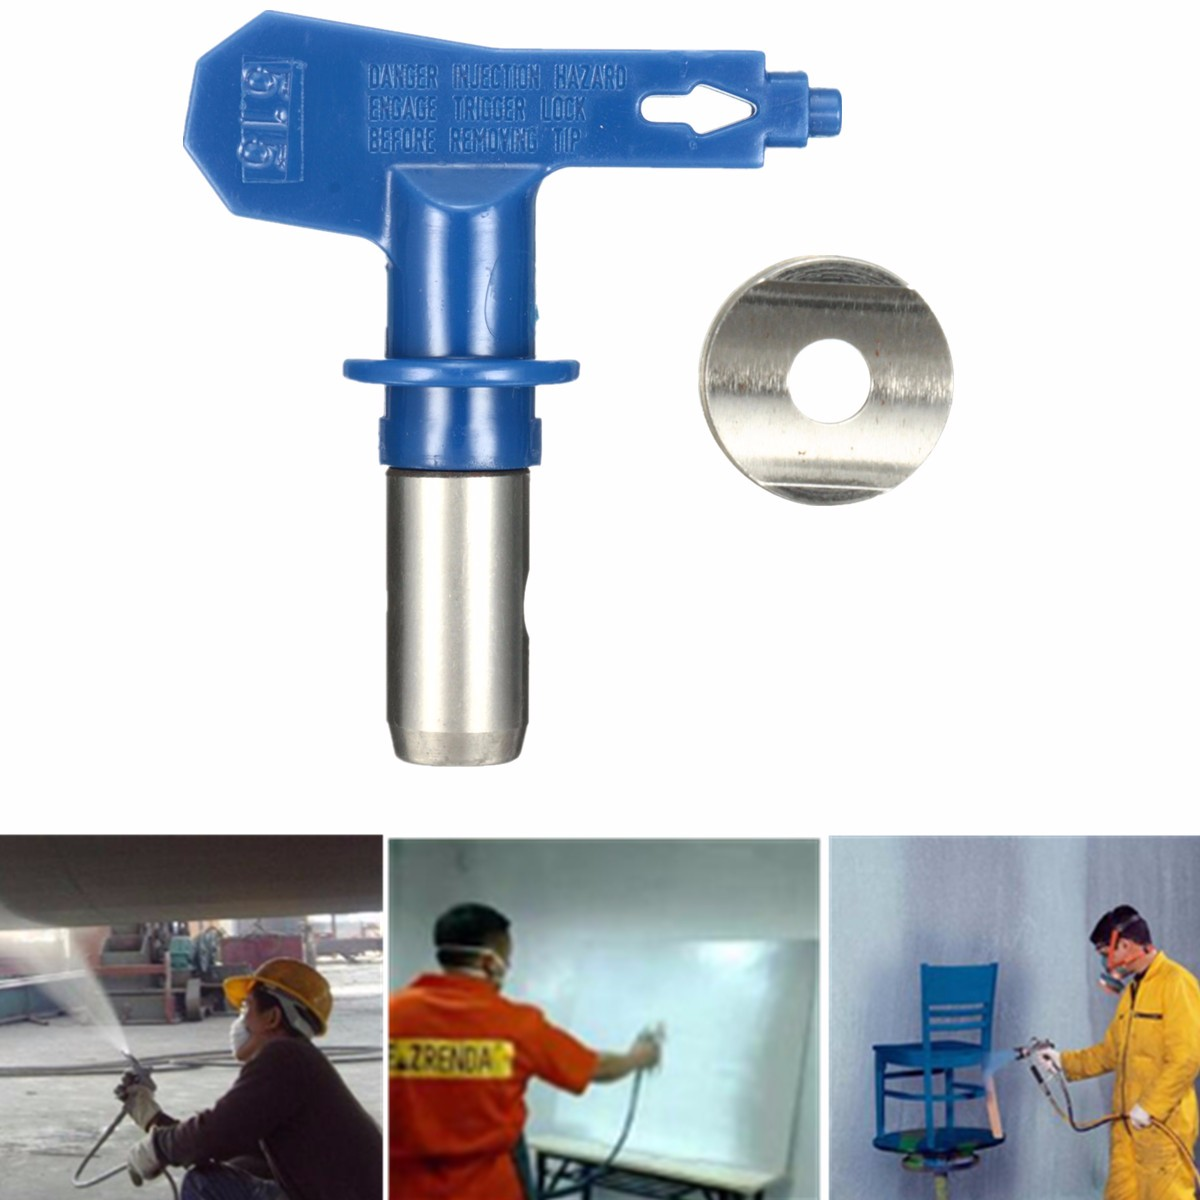 Blue 5 Series Airless Spray Tips Spray Nozzle Spraying Machine Accessories  For Airless Spray Gun And Paint Sprayer